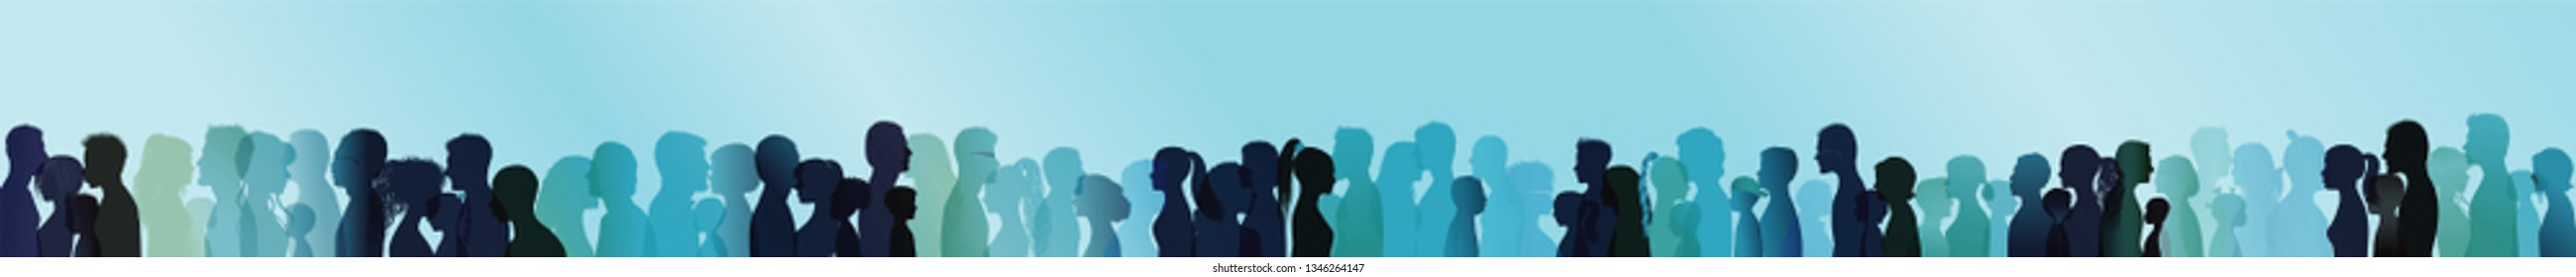 Friendship concept. Large group or team of people silhouette colored profile. Community. People talking. Face. Head. Blue multiple exposure